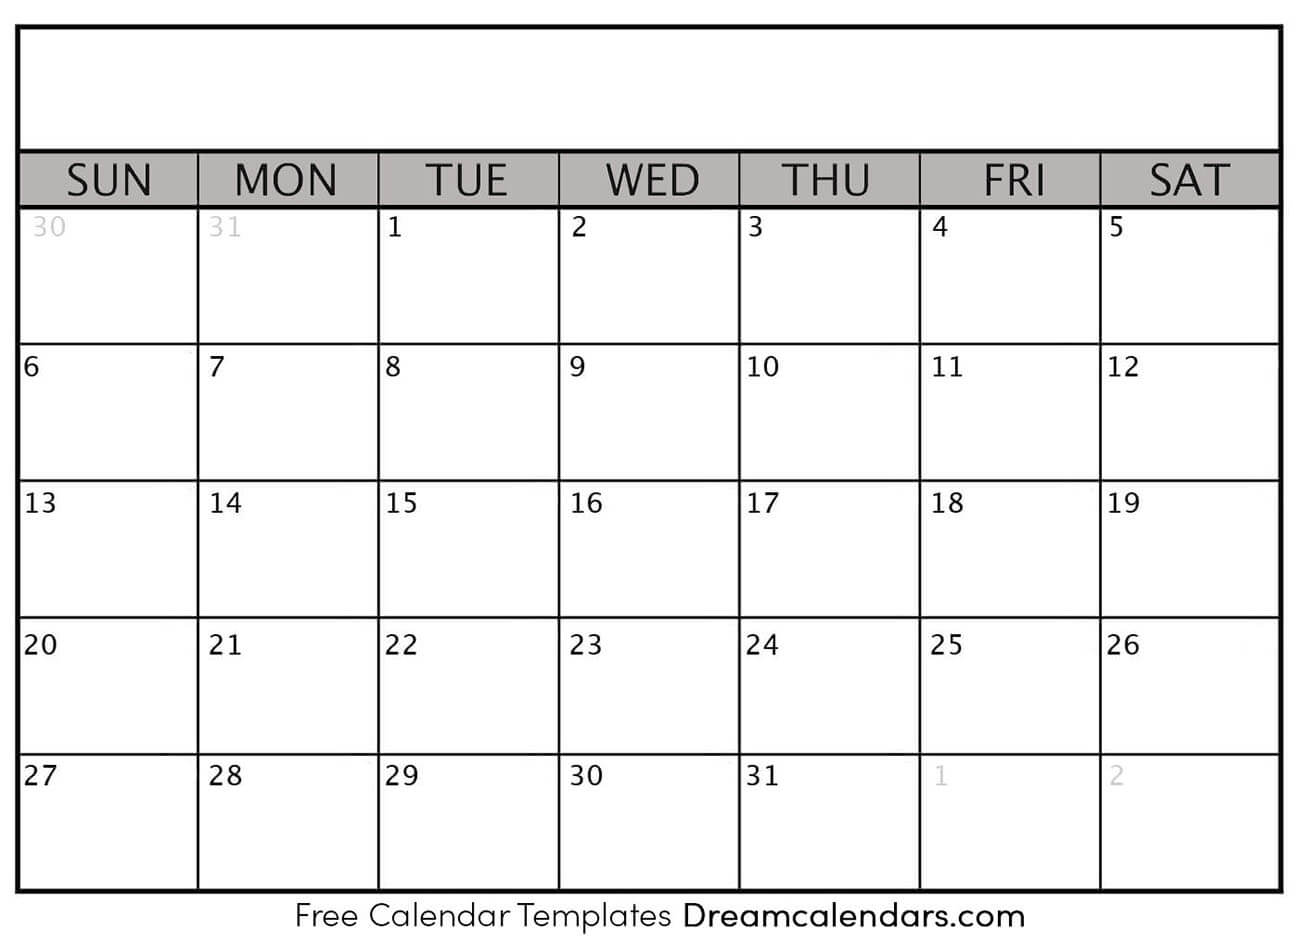 blank calender templates